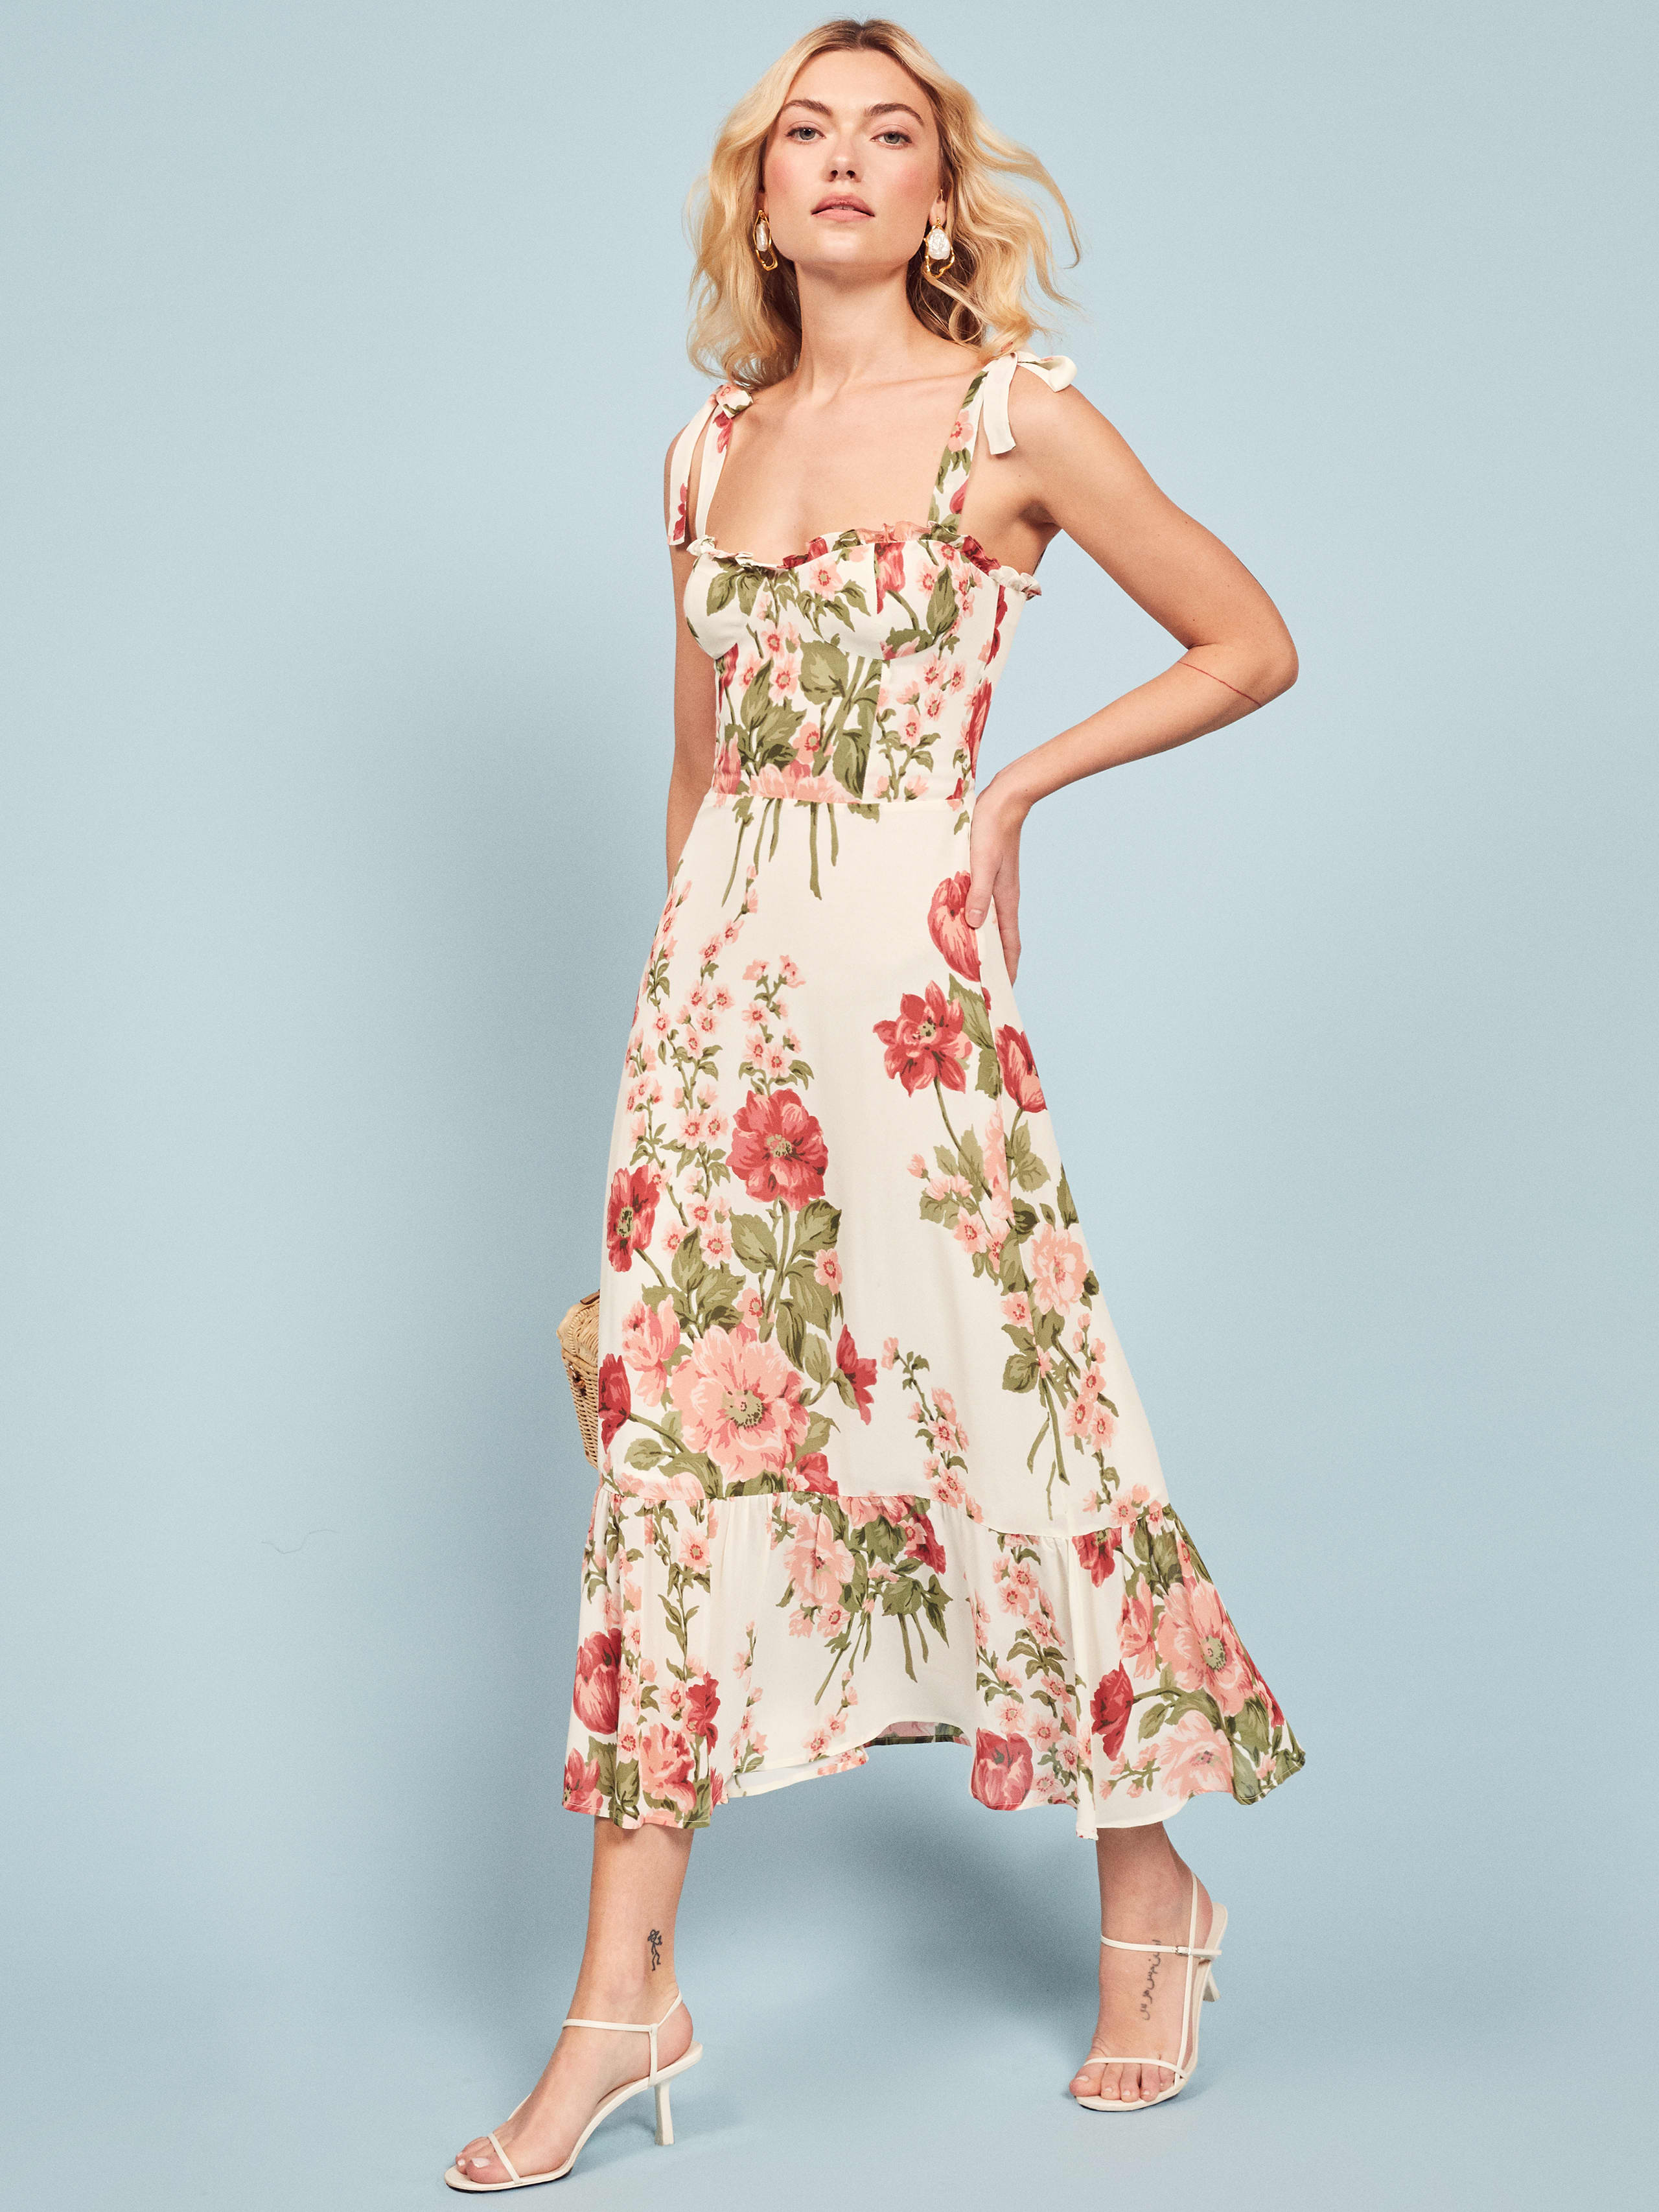 9b0fdedc49 New - Shop Women s New Clothing - Reformation